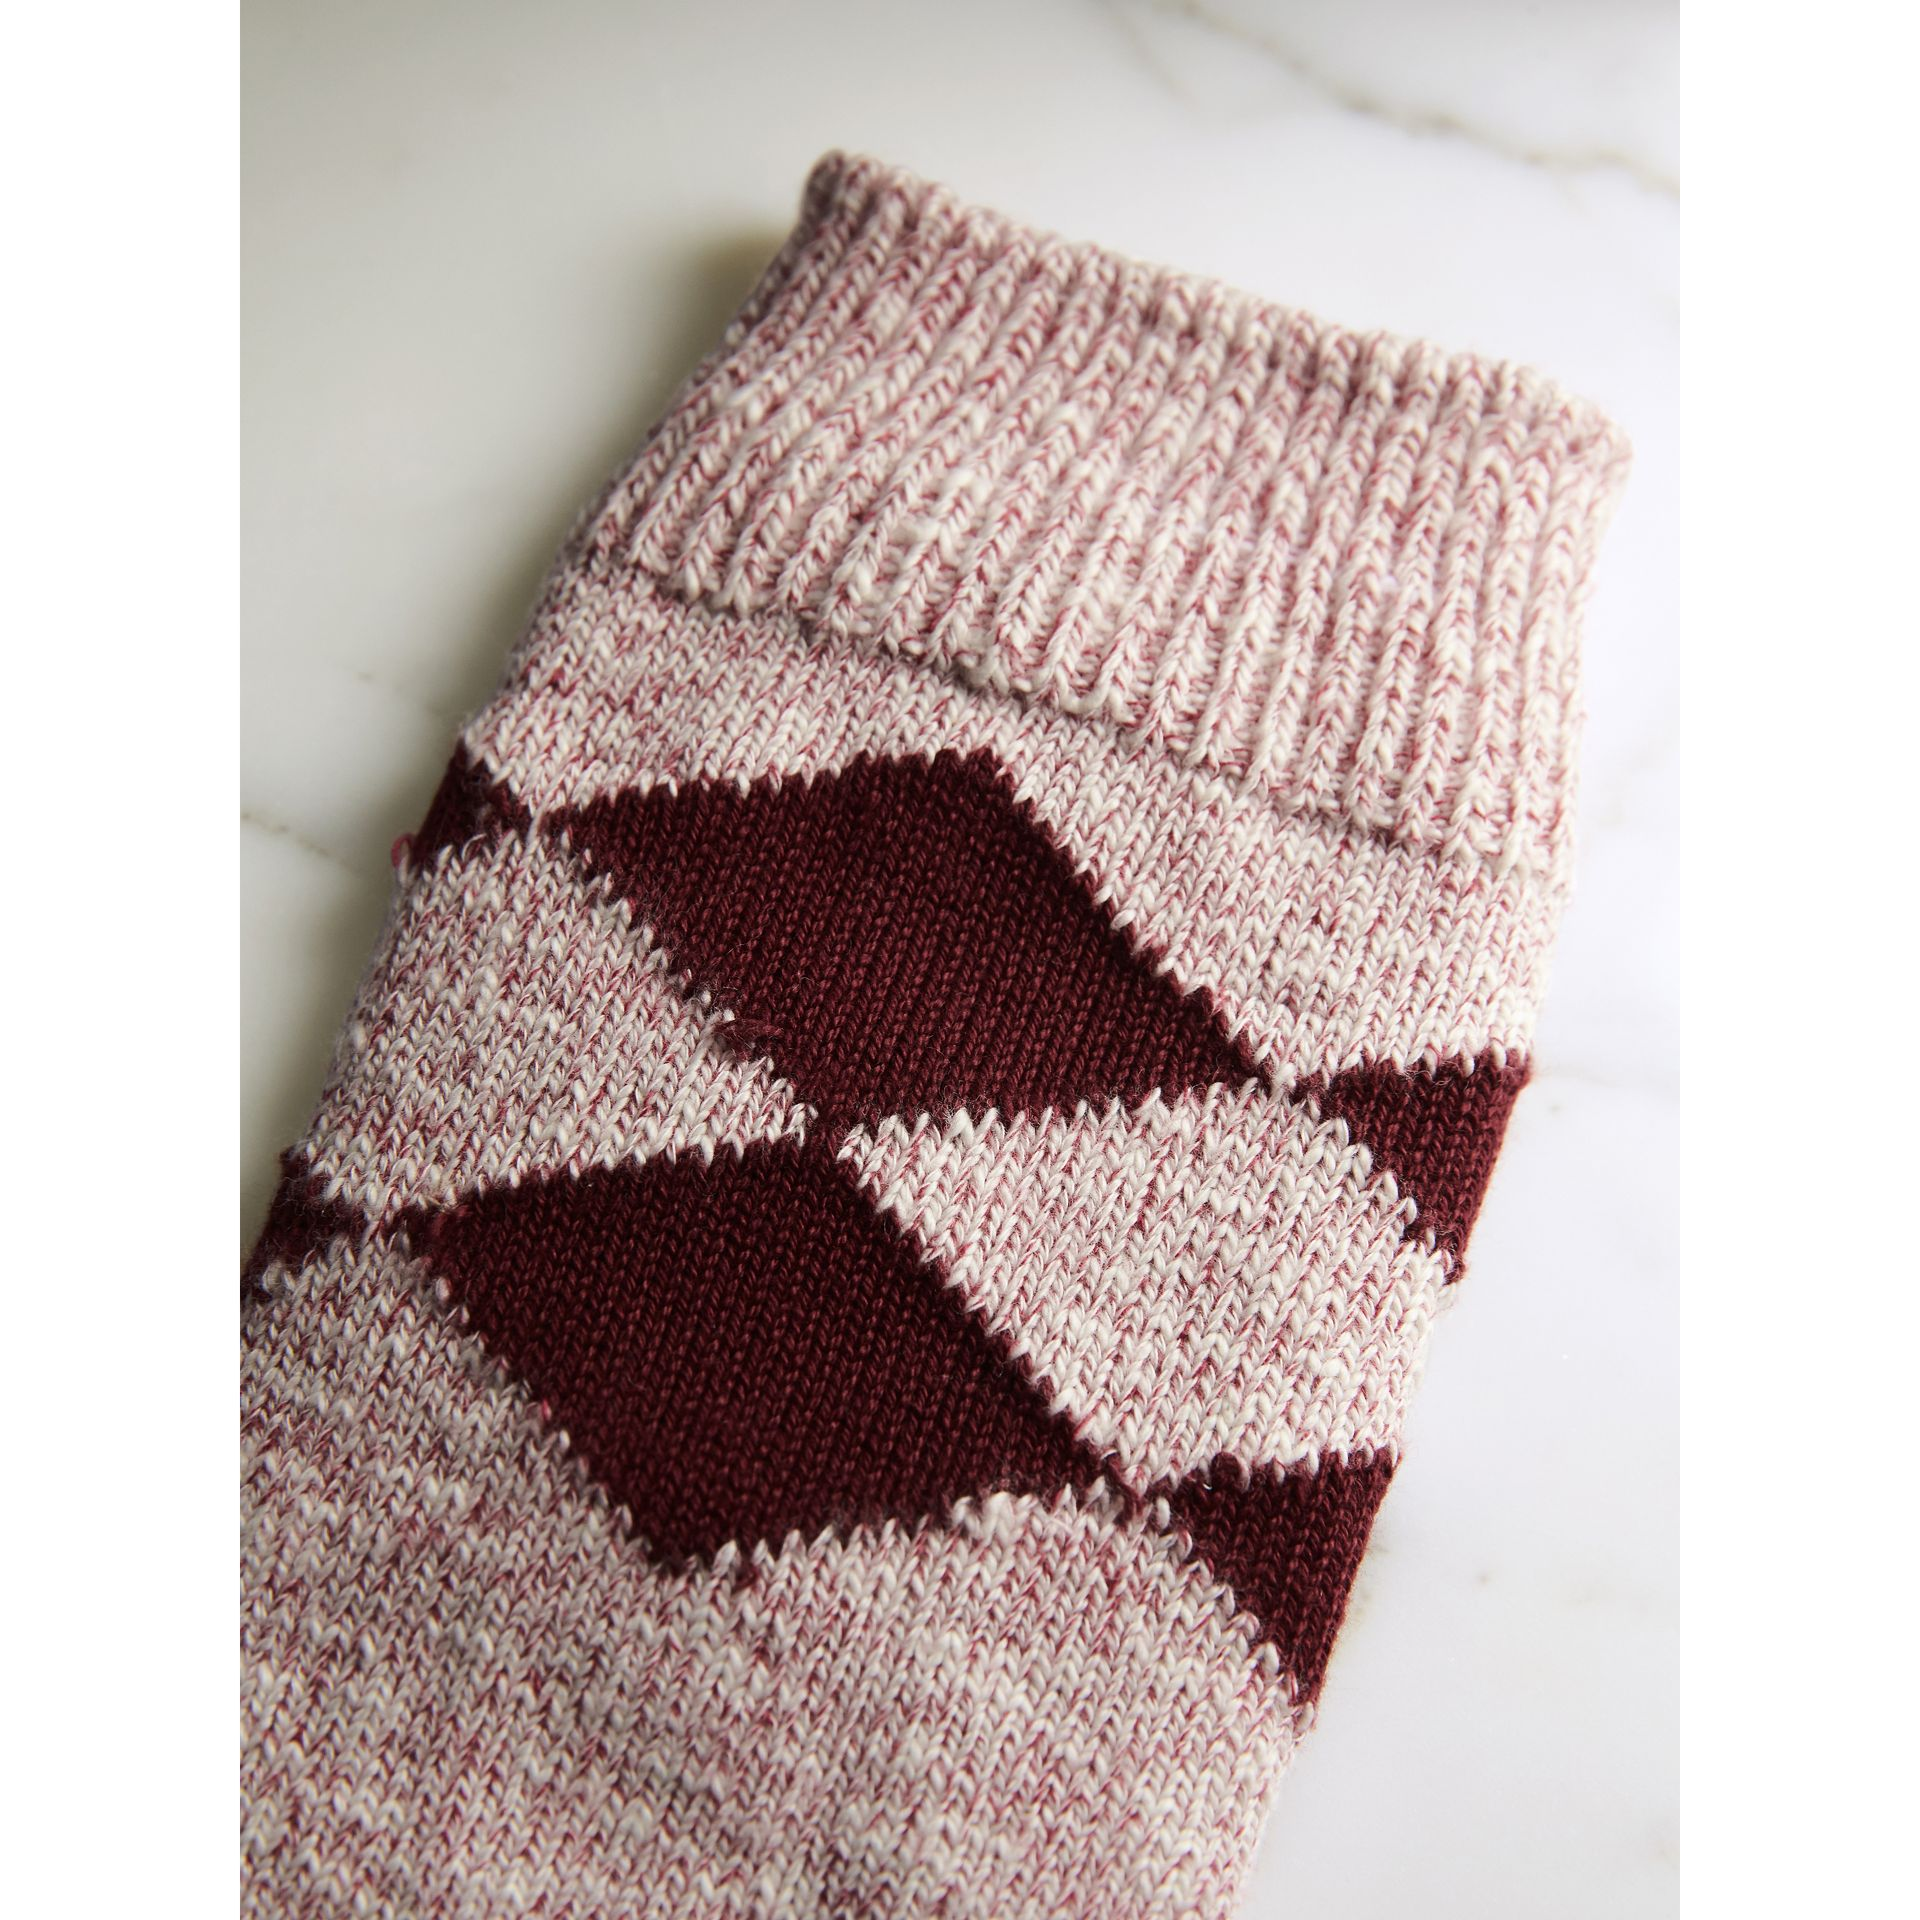 Diamond Knitted Cotton Mouliné Socks in Burgundy | Burberry - gallery image 2